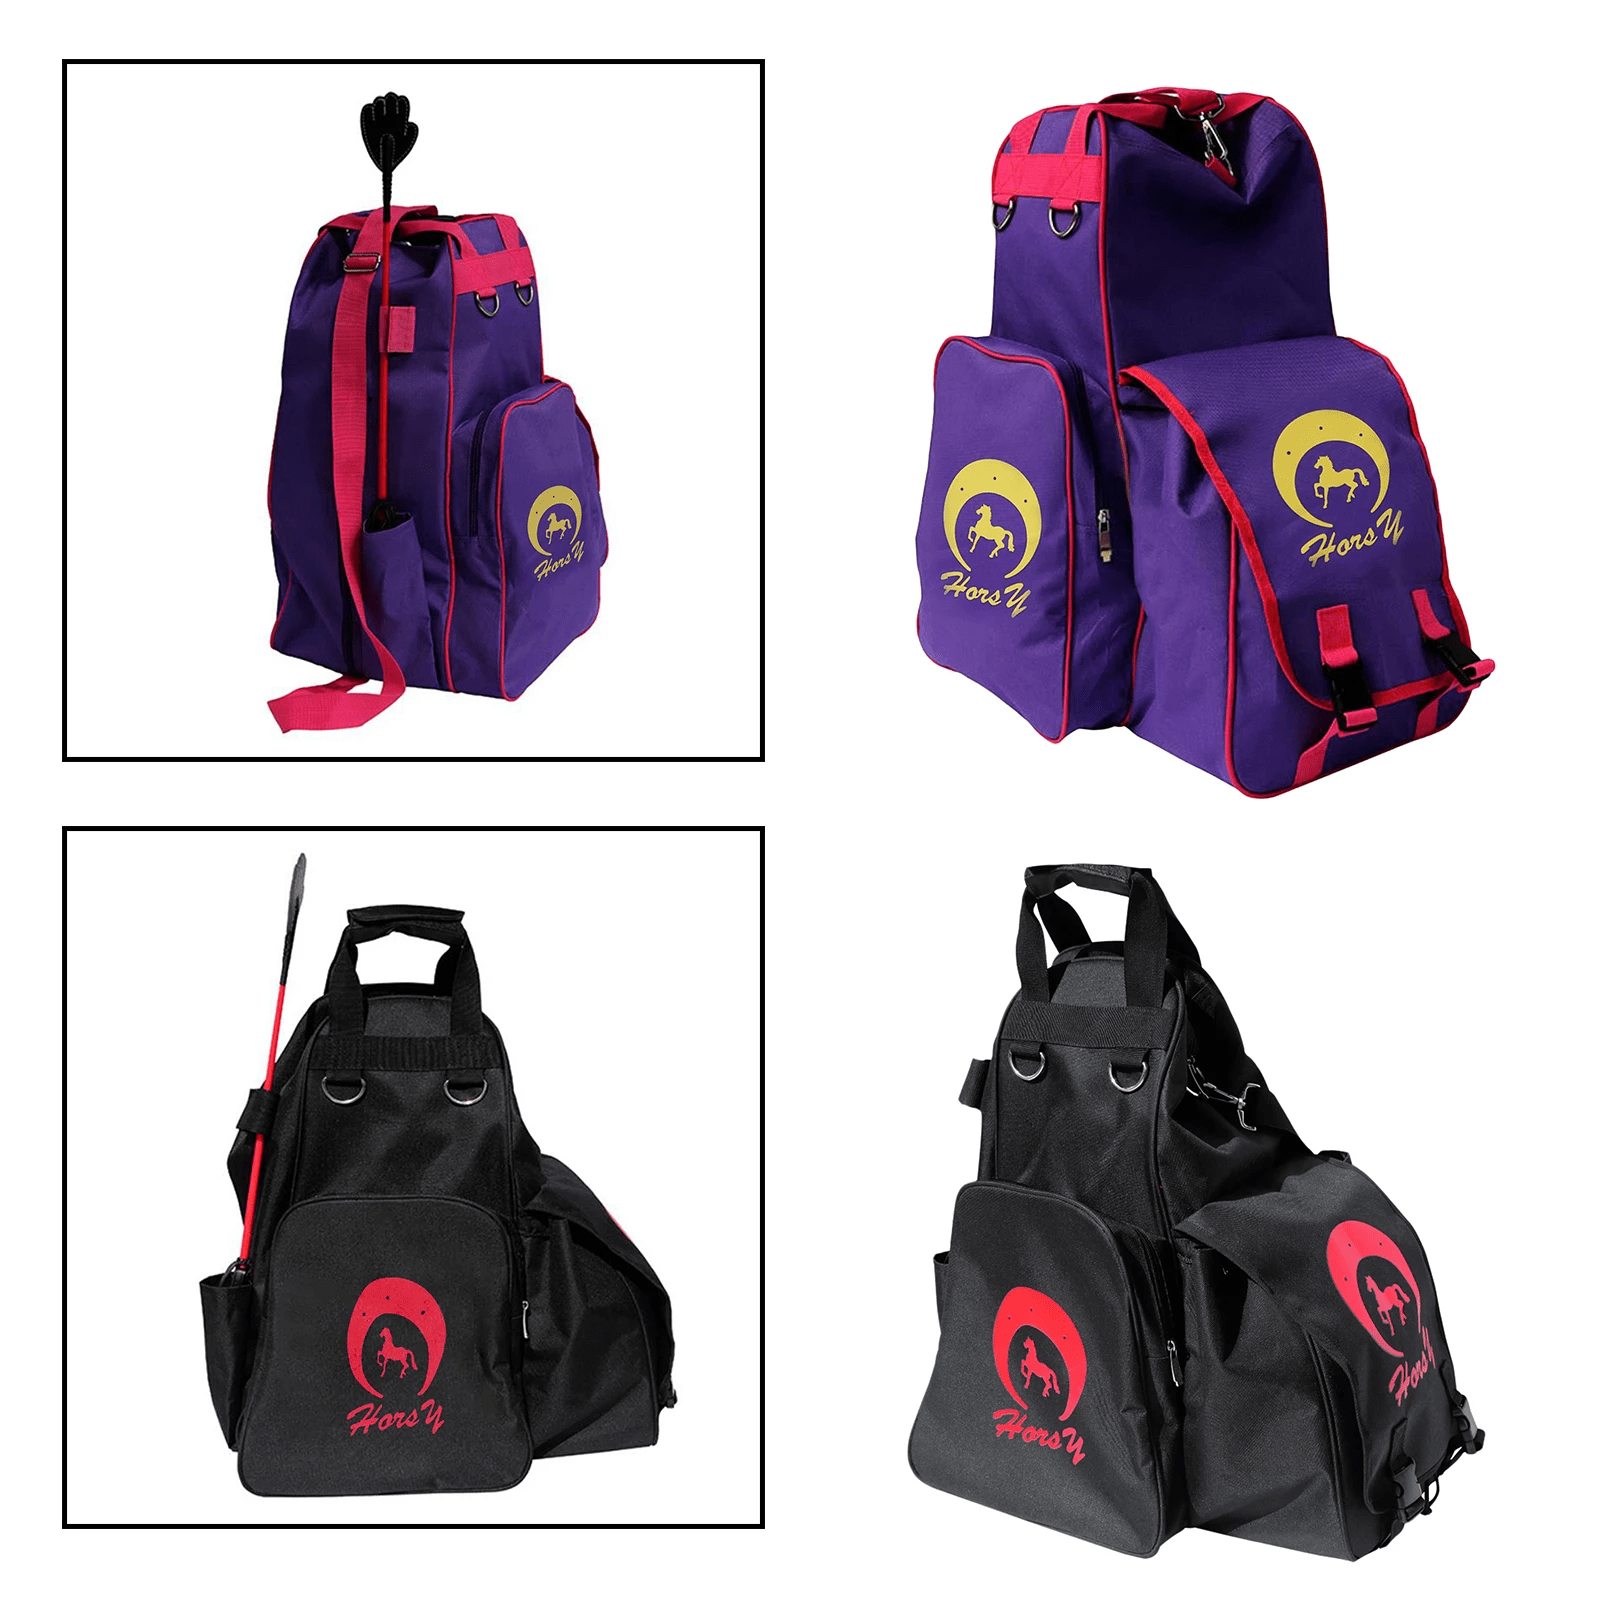 Equestrian Bag, Professional Outdoor Sports Equestrian Bags, Horse Riding Outfit Helmet Boots Storage Bags